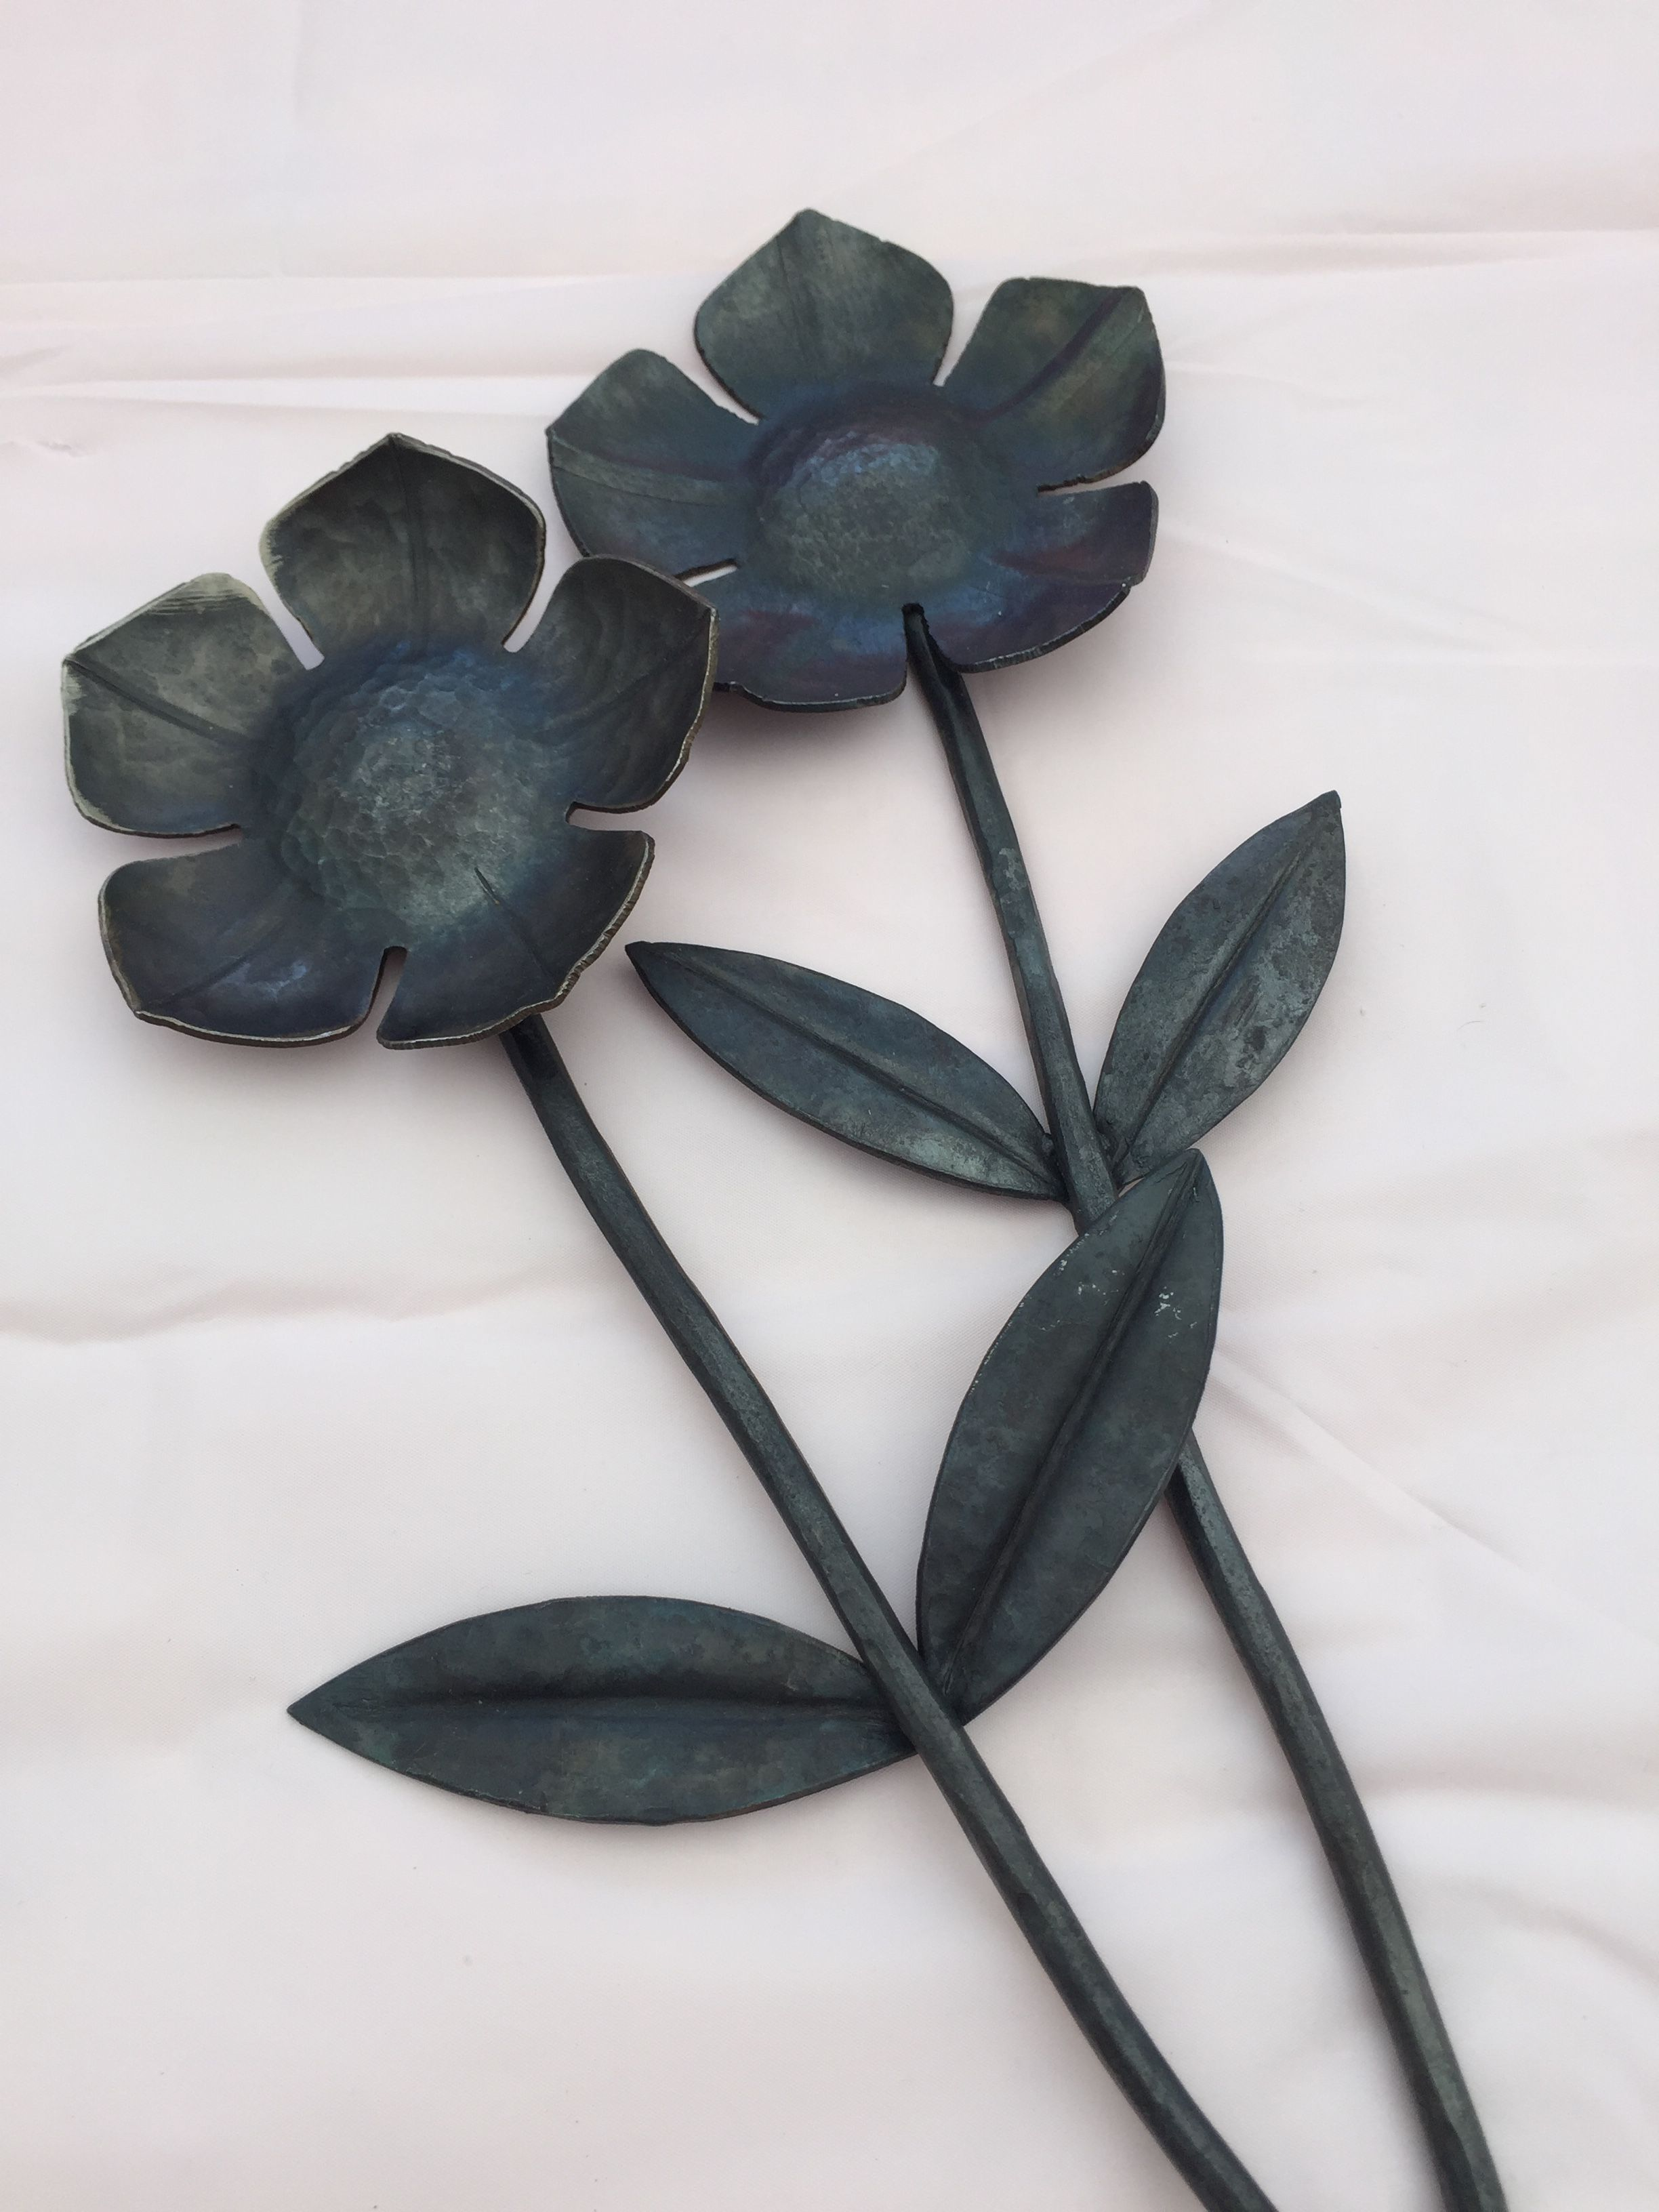 Forged metal everlasting flowers hand forged by harry at salty forged metal everlasting flowers hand forged by harry at salty dogs create izmirmasajfo